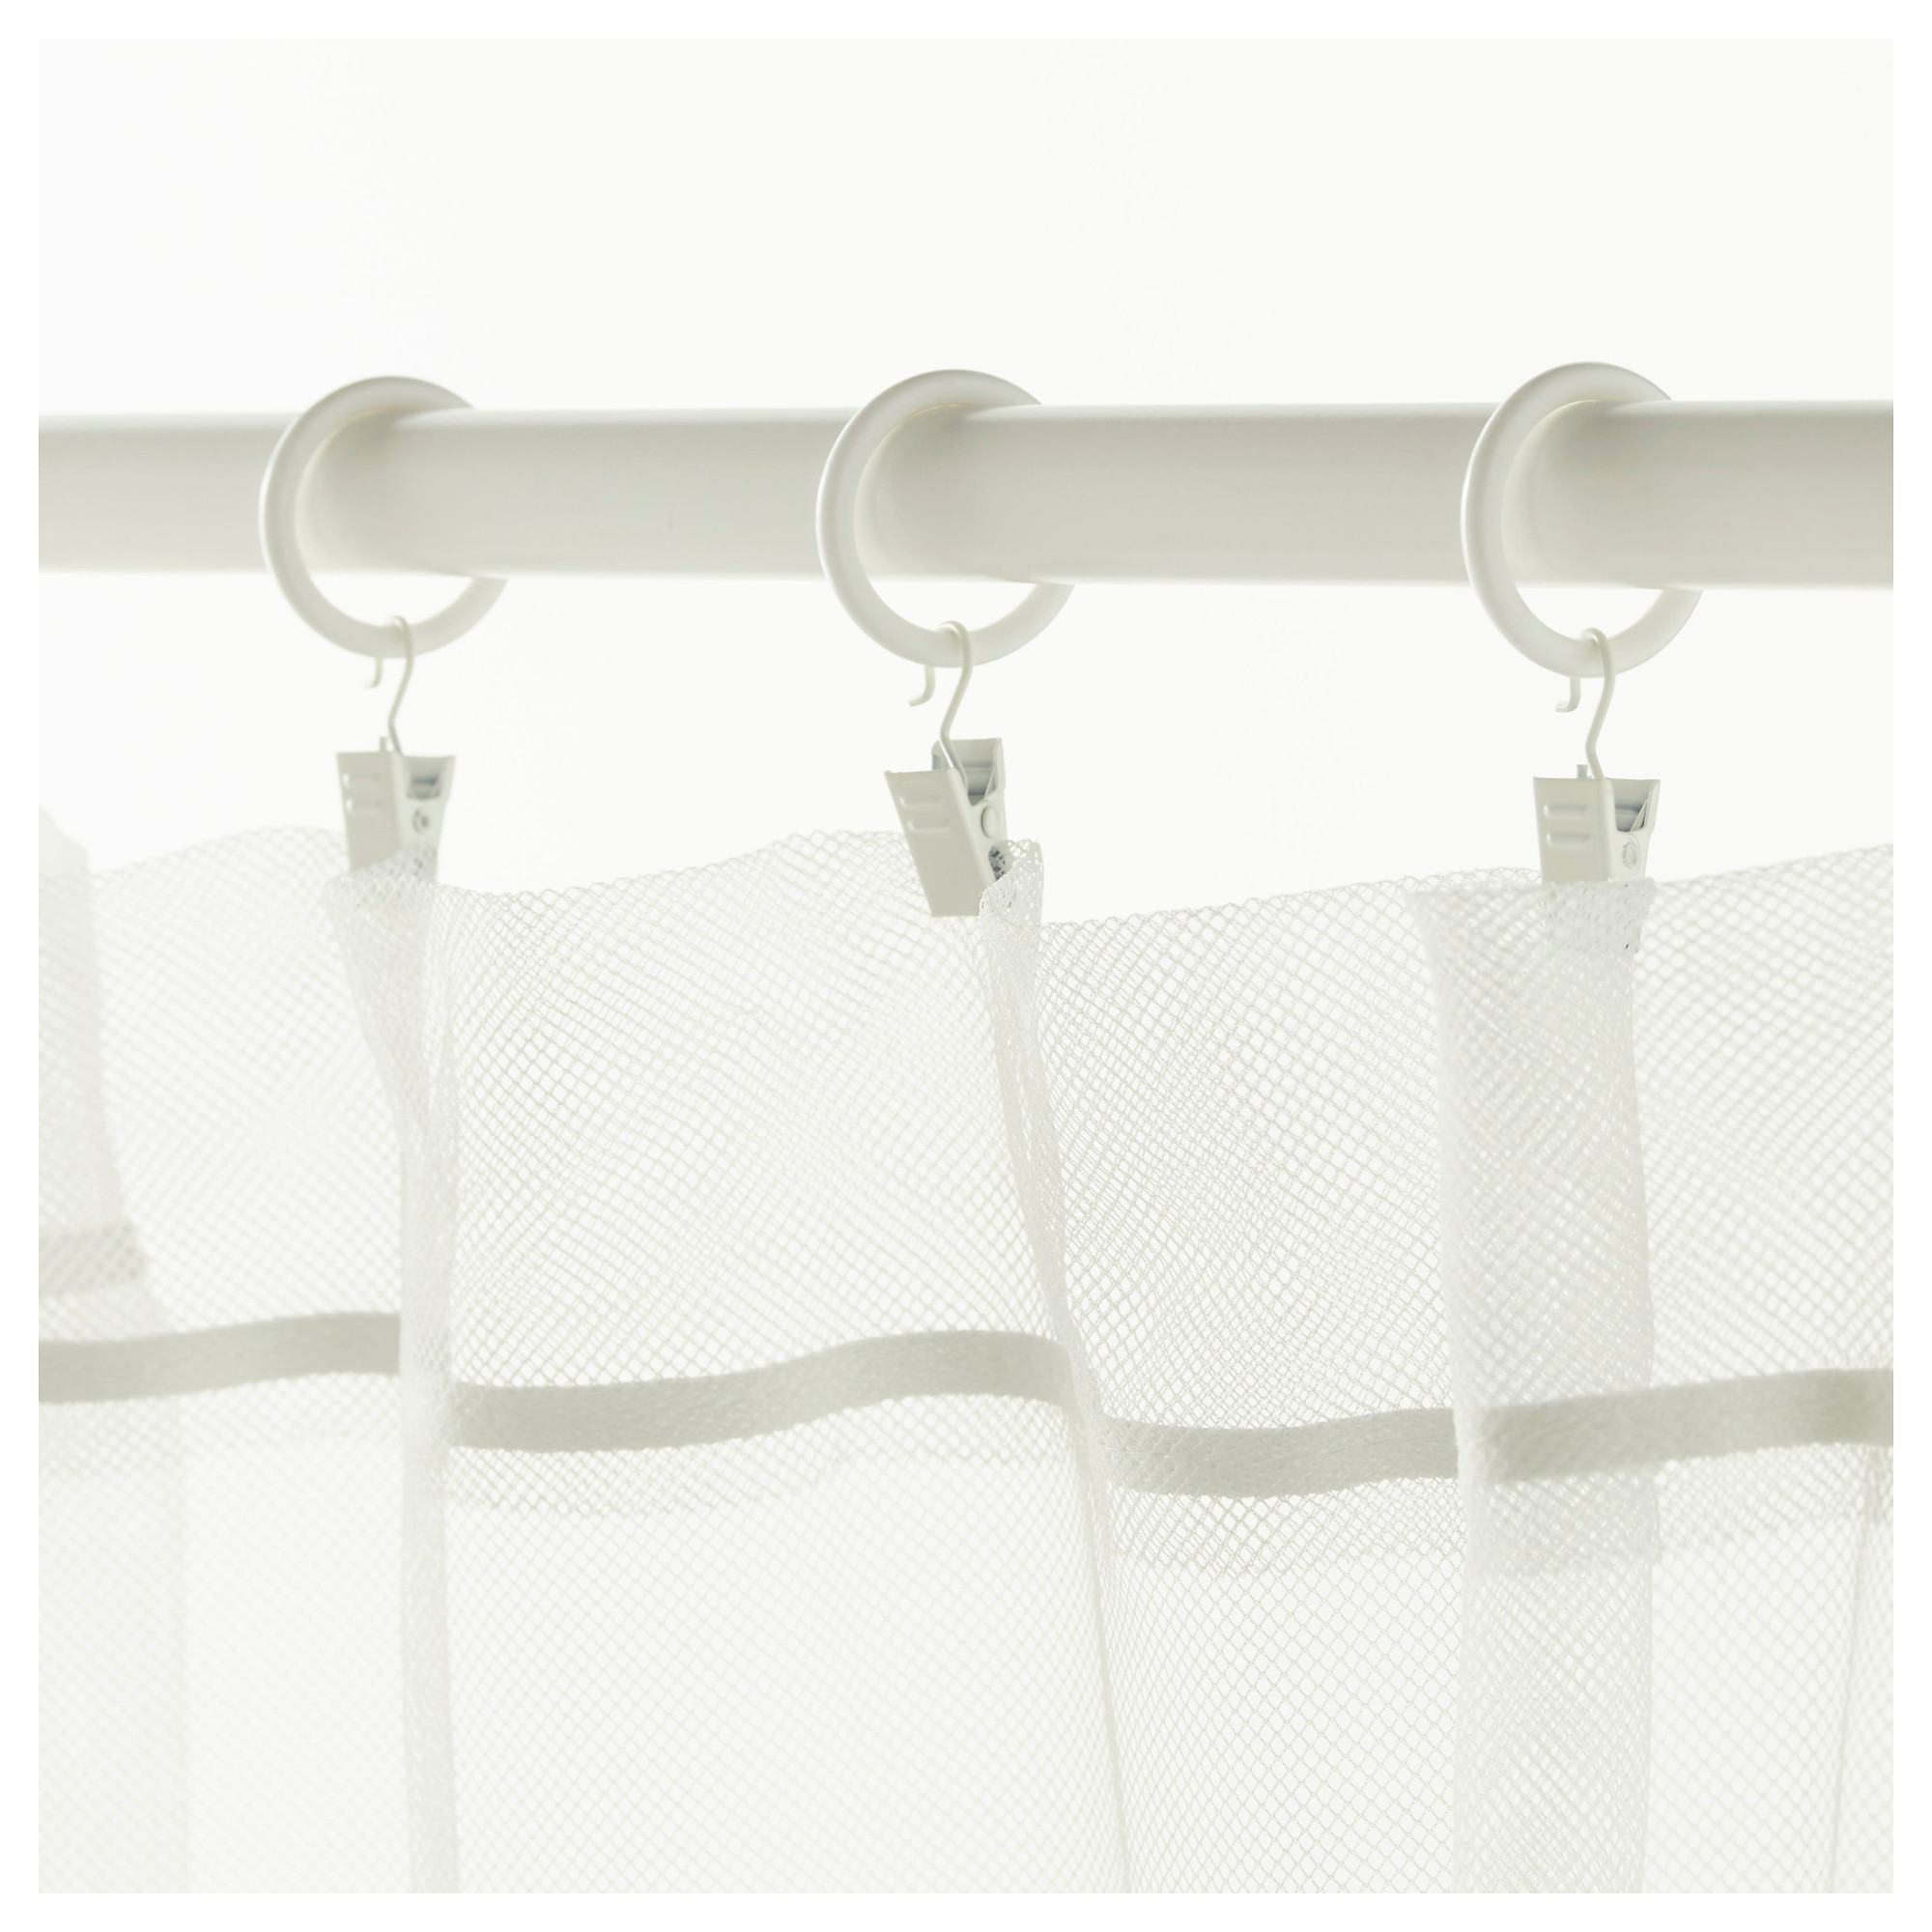 Syrlig Curtain Ring With Clip And Hook White 25 Mm Curtains With Rings Curtain Rings With Clips Curtains